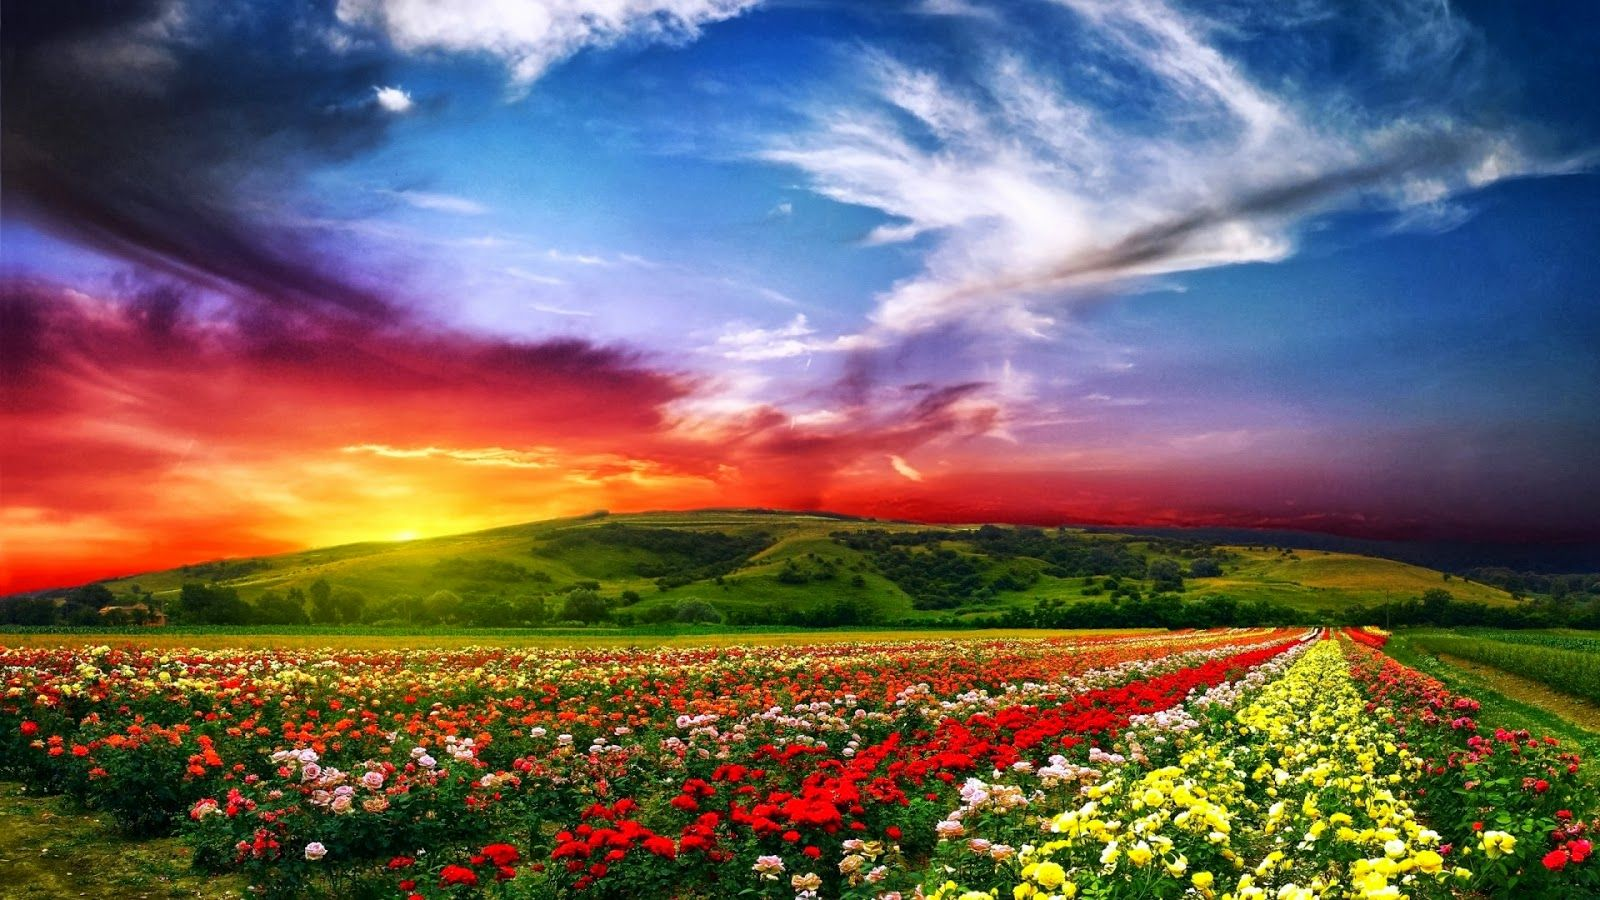 Full Hd Nature Wallpapers Free Download For Laptop Pc Desktop Background Valley Of Flowers Landscape Wallpaper Beautiful Landscapes